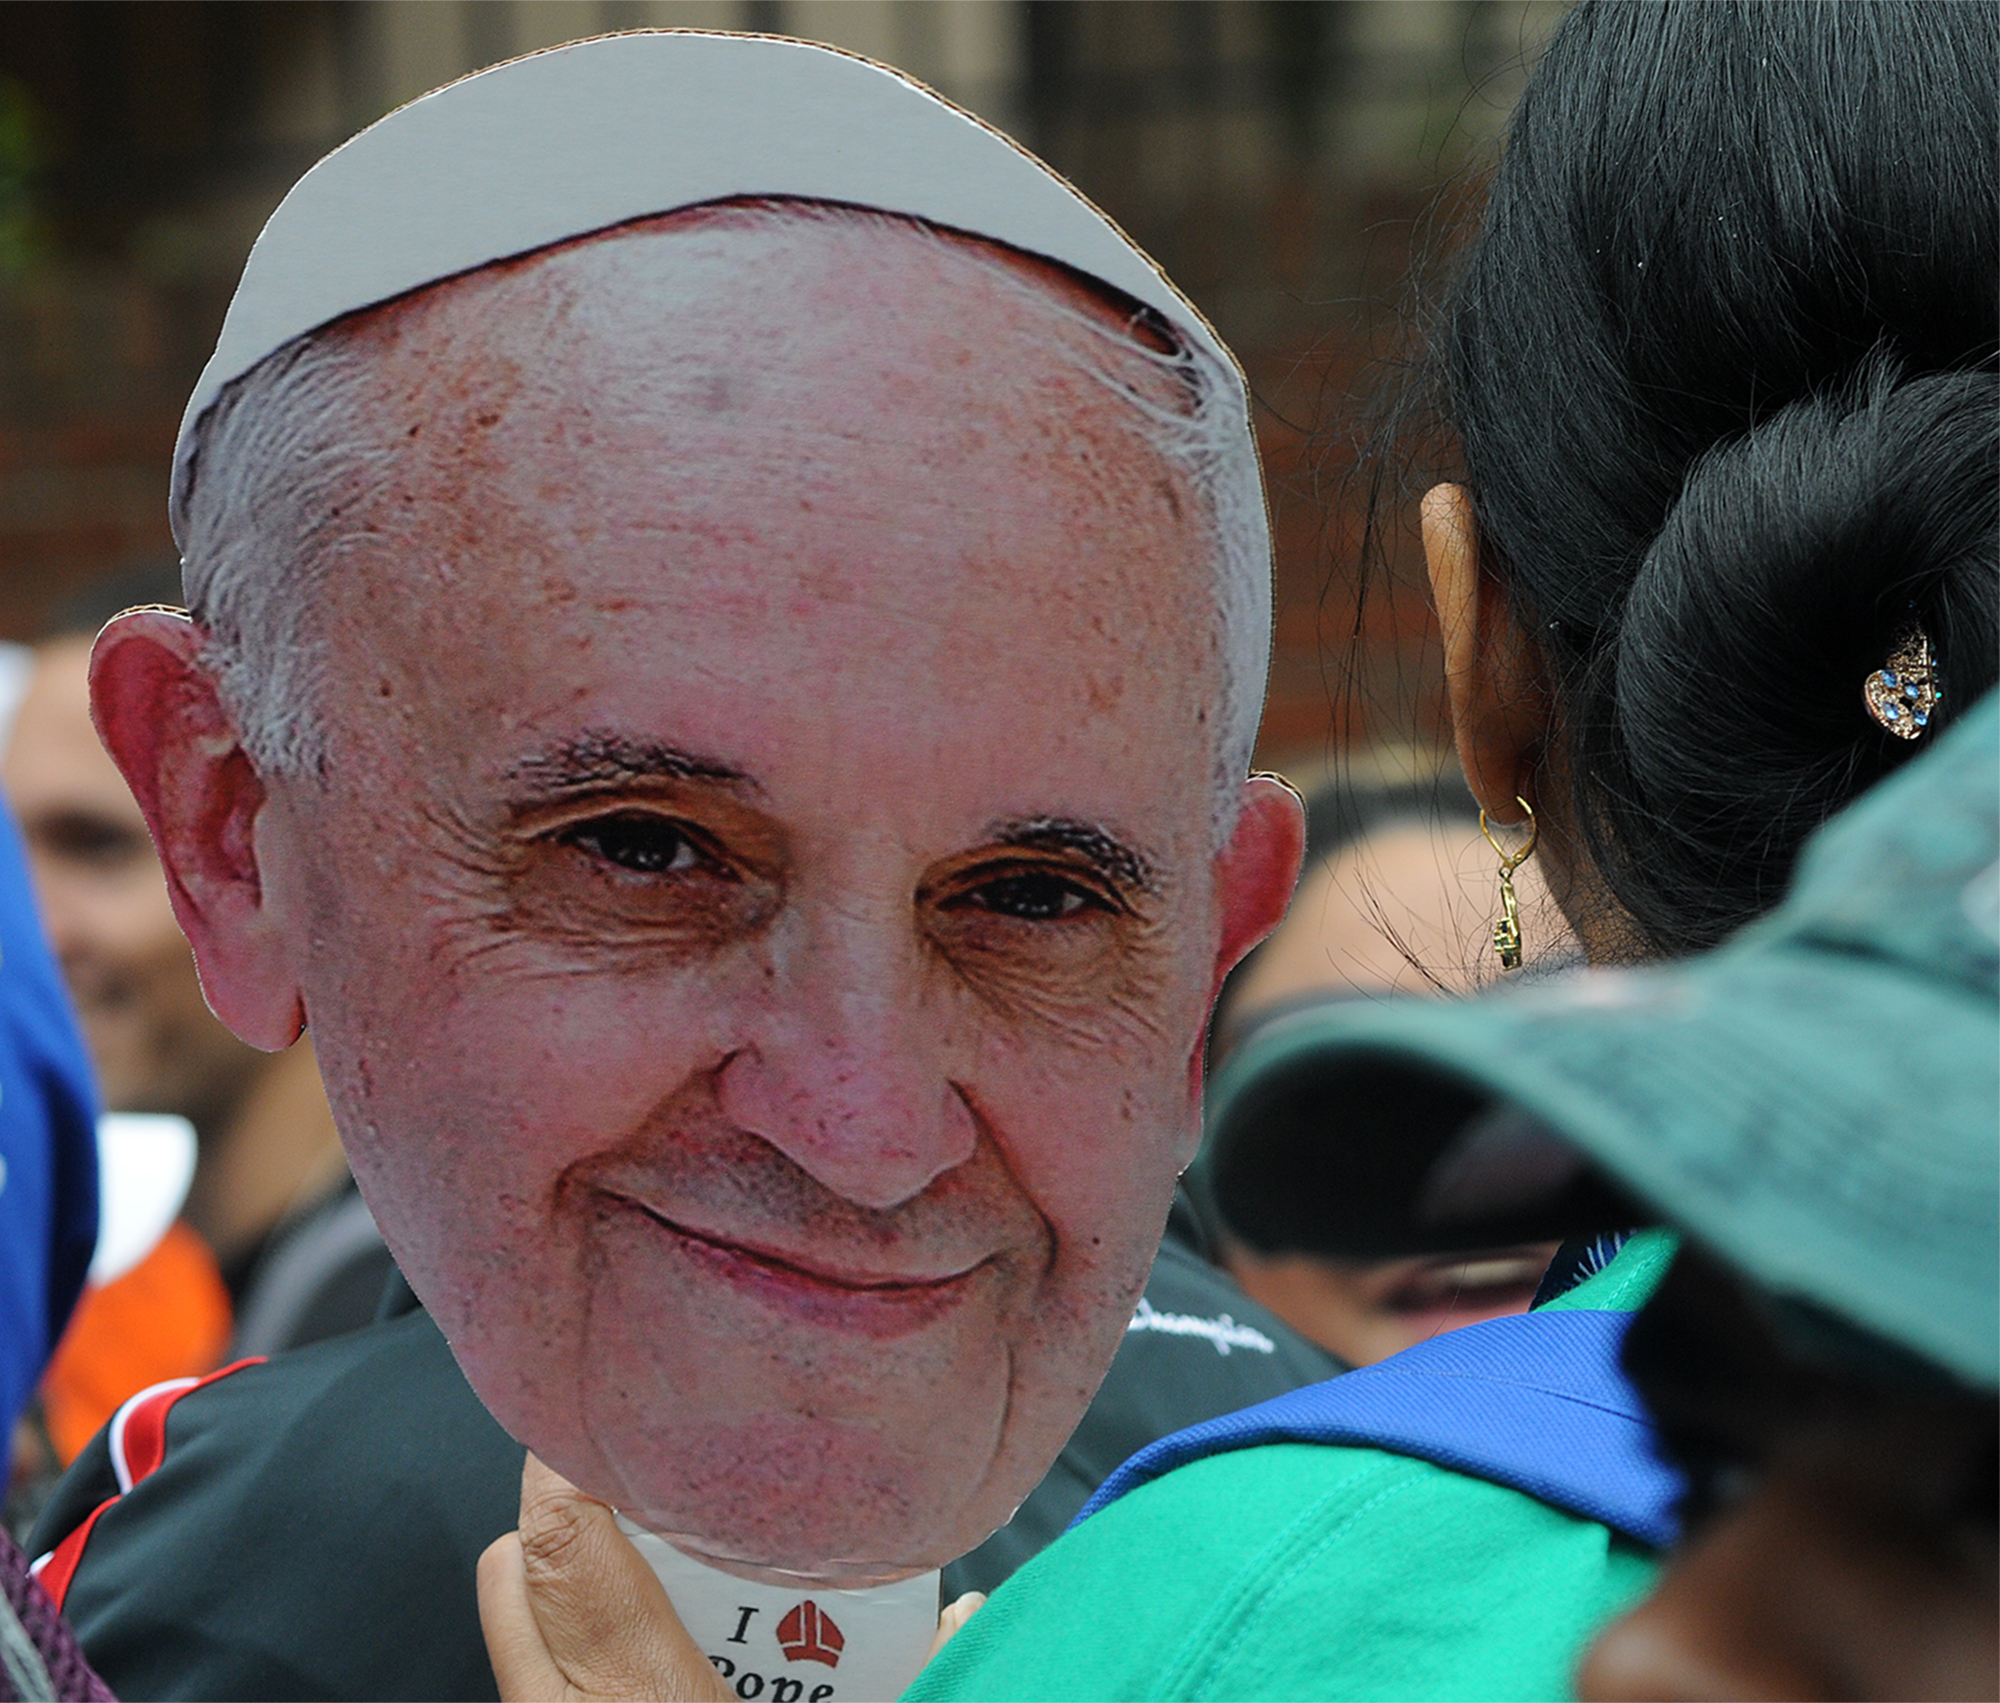 A woman holds a Pope Francis cardboard cutout while waiting to see Pope Francis' Mass on the Ben Franklin Parkway on September 27, 2015. Lines were multiple hours-long waits with no bathrooms or handicap entrances along the route.